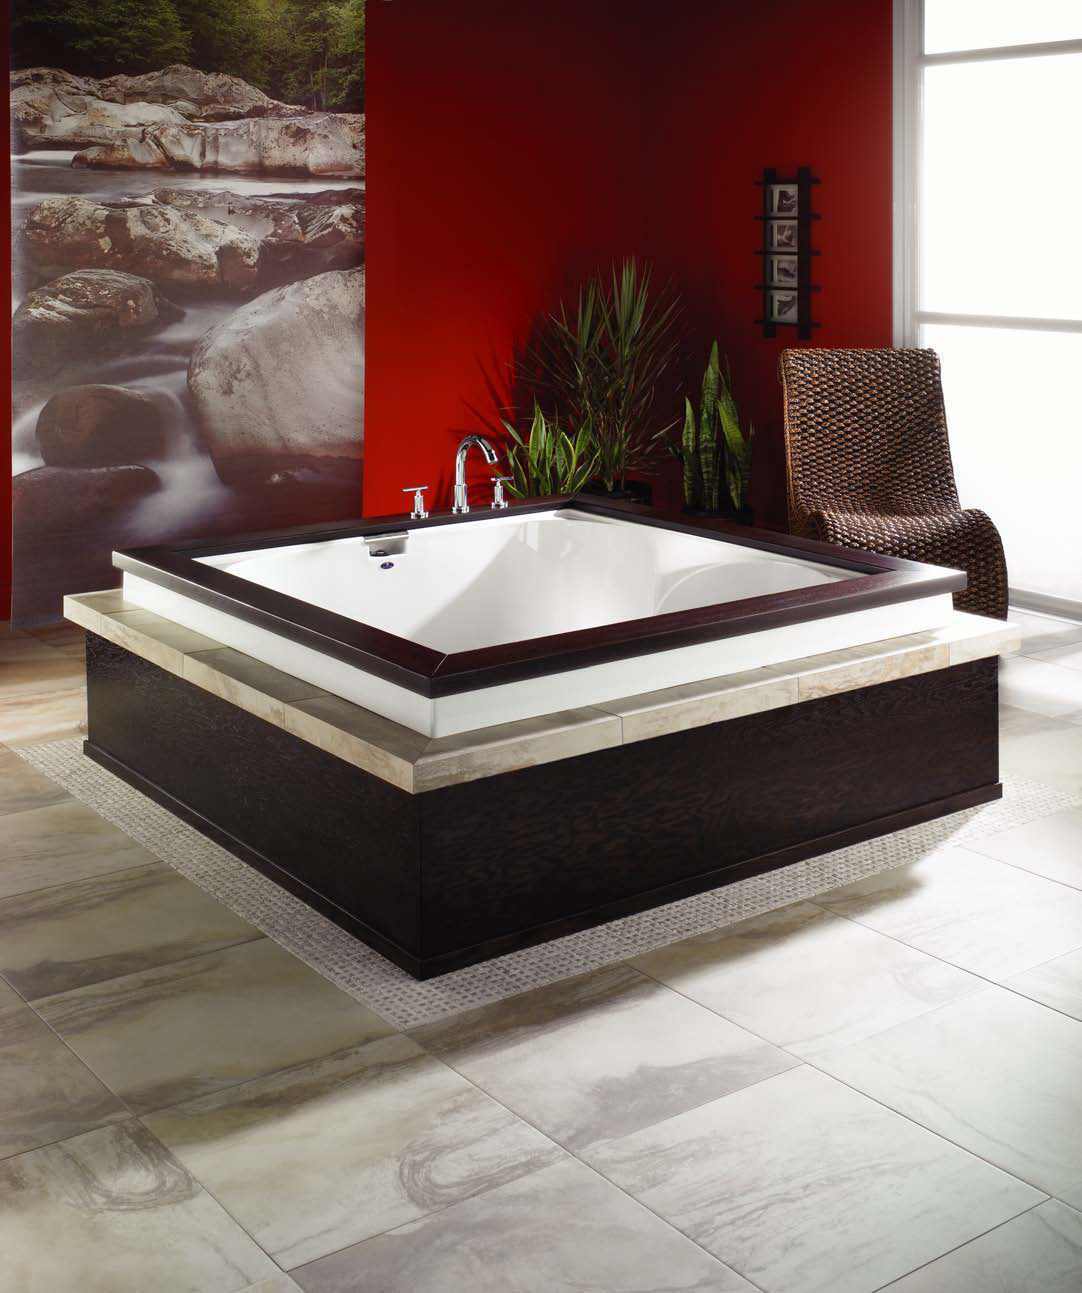 Elegant Japanese Soaking Tub – Macao by Neptune